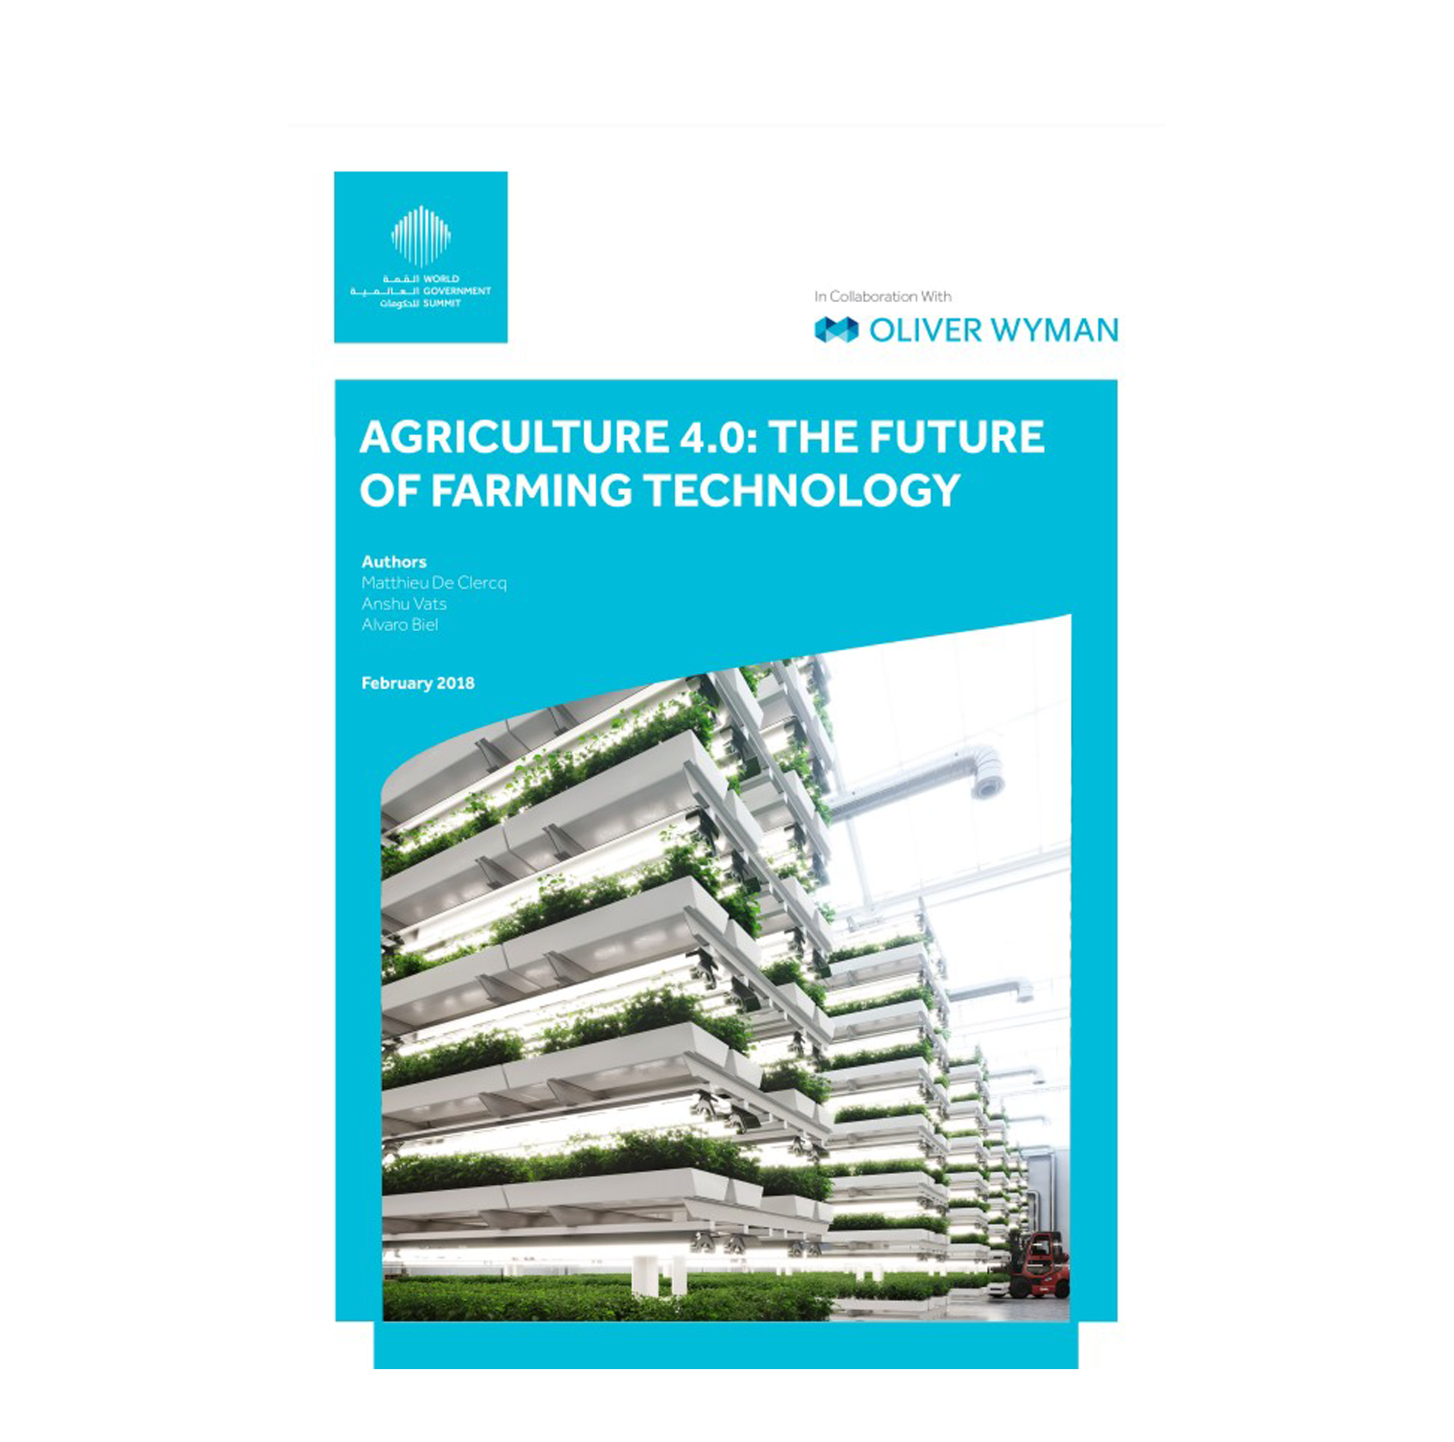 Agriculture 4.0: The Future of Farming Technology;